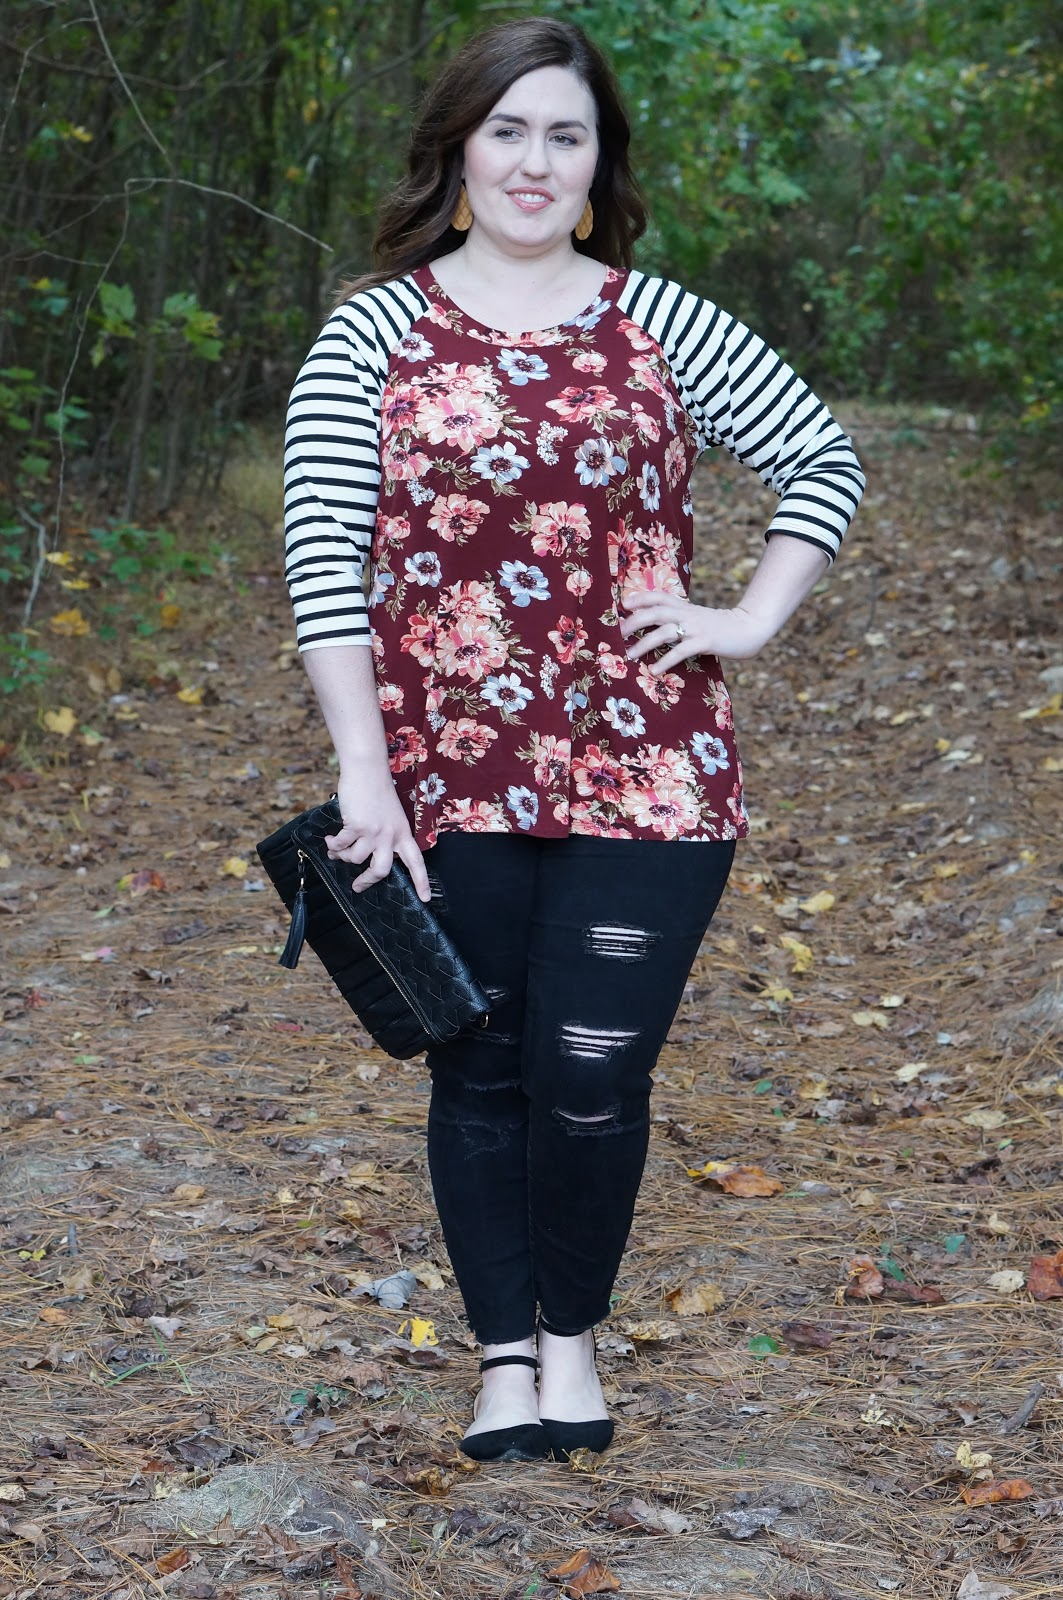 FALL STYLE FLORAL TOP | WEEKENDING THIS CHIC SOUL by North Carolina style blogger Rebecca Lately